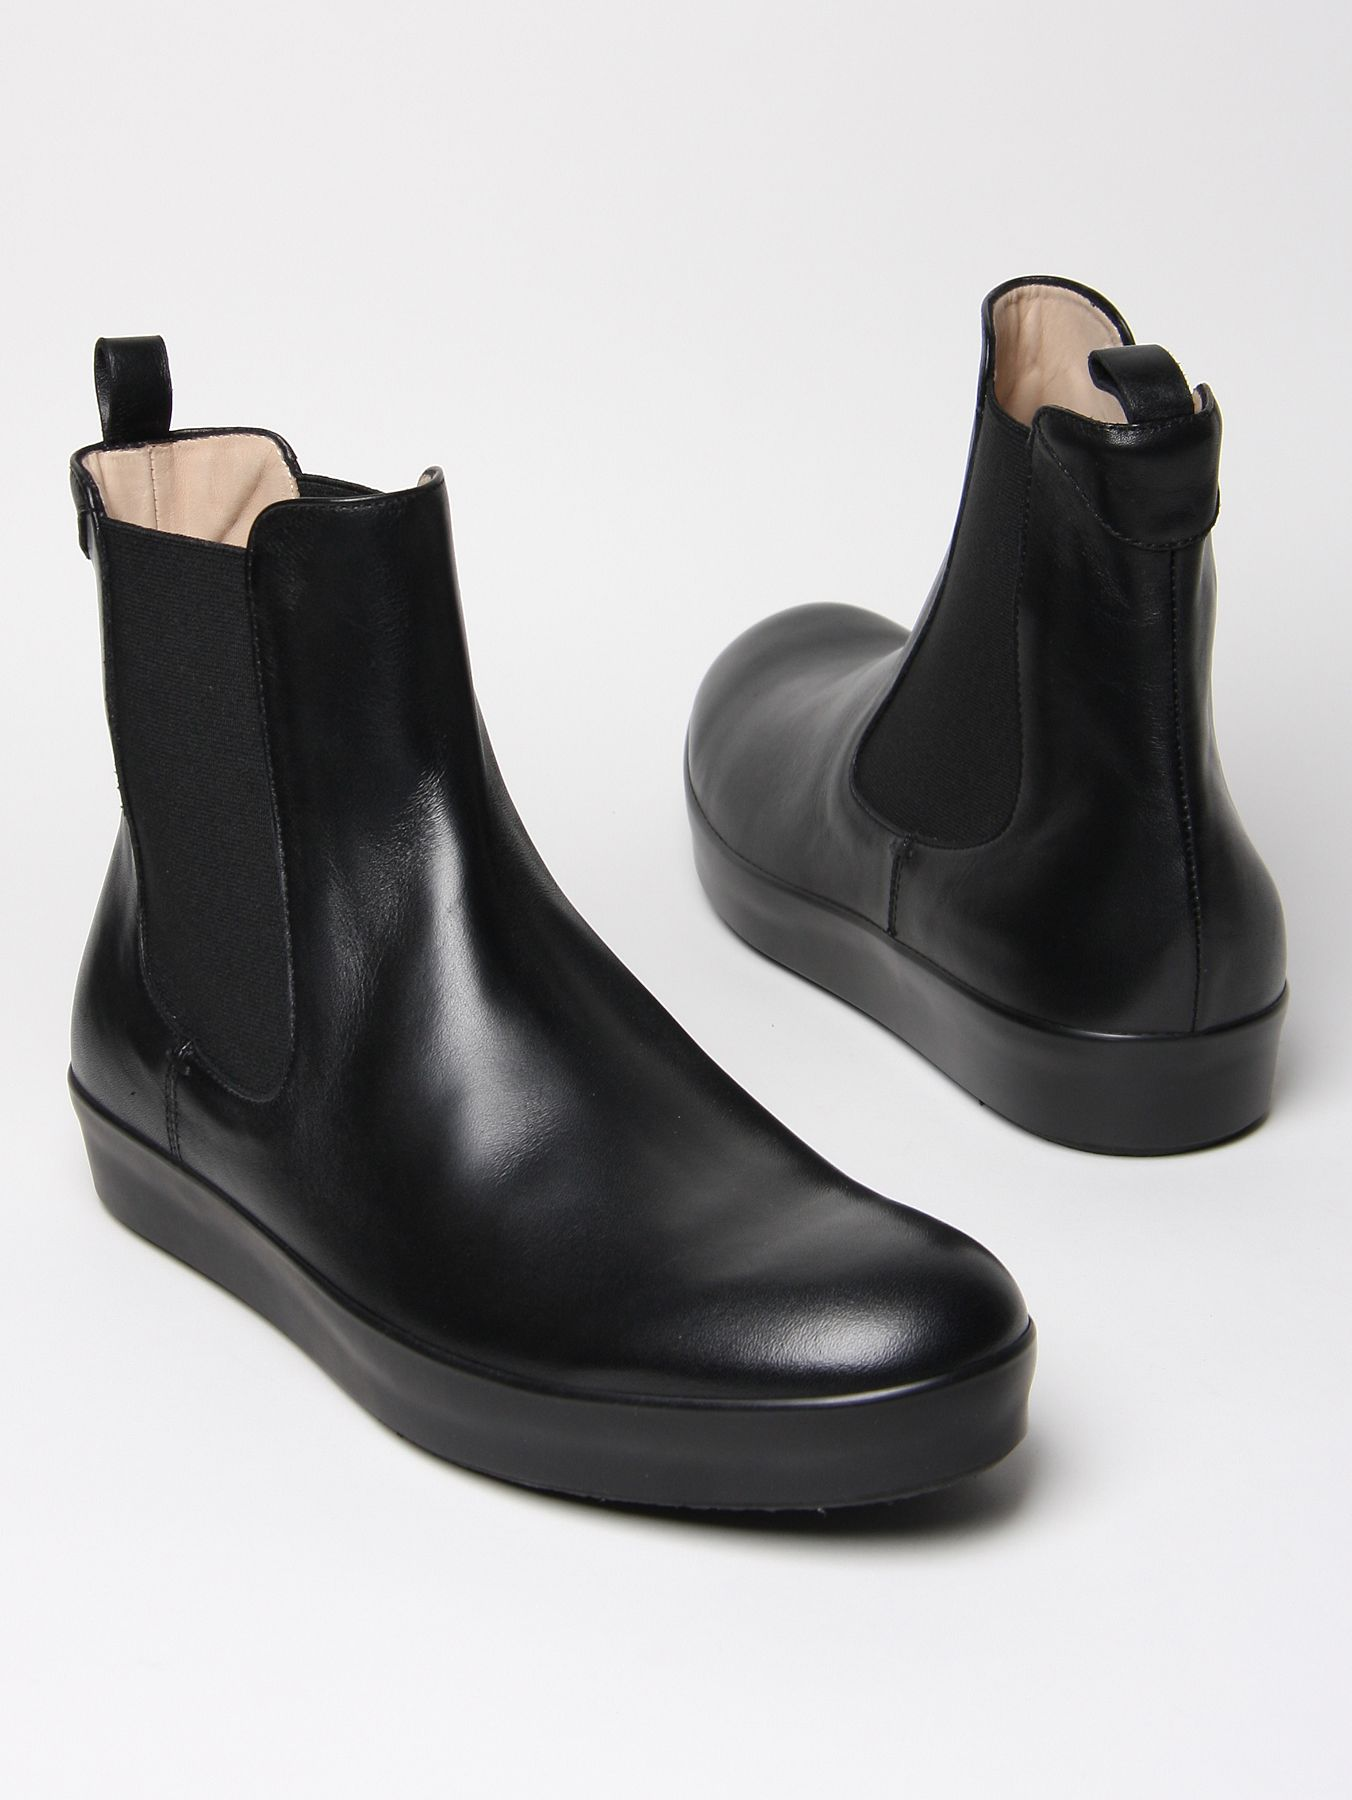 jil sander mens calf leather chelsea boot in black for